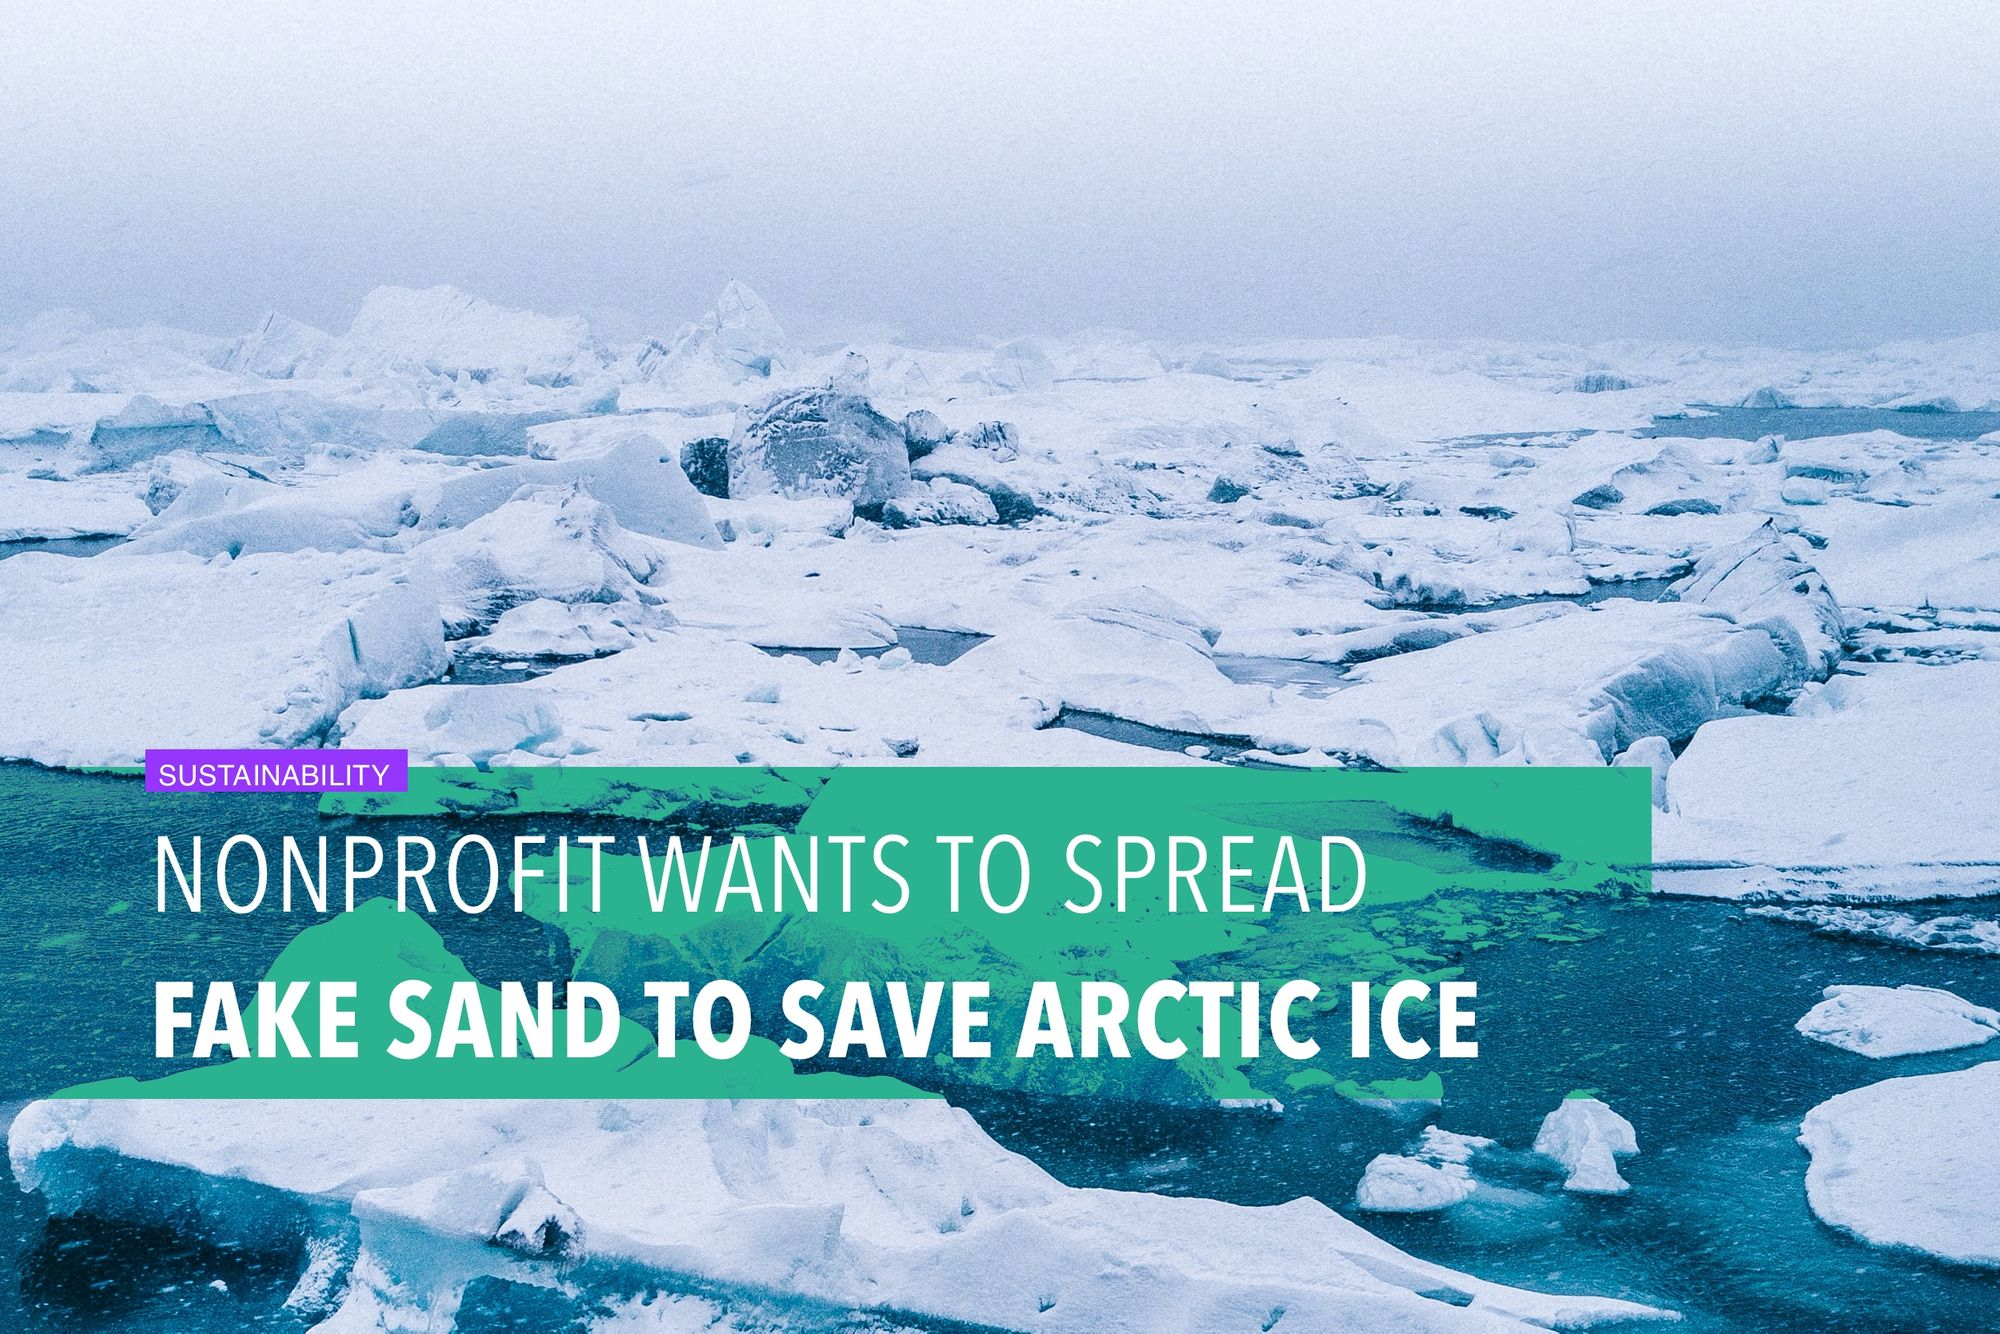 Nonprofit wants to spread fake sand to save Arctic ice